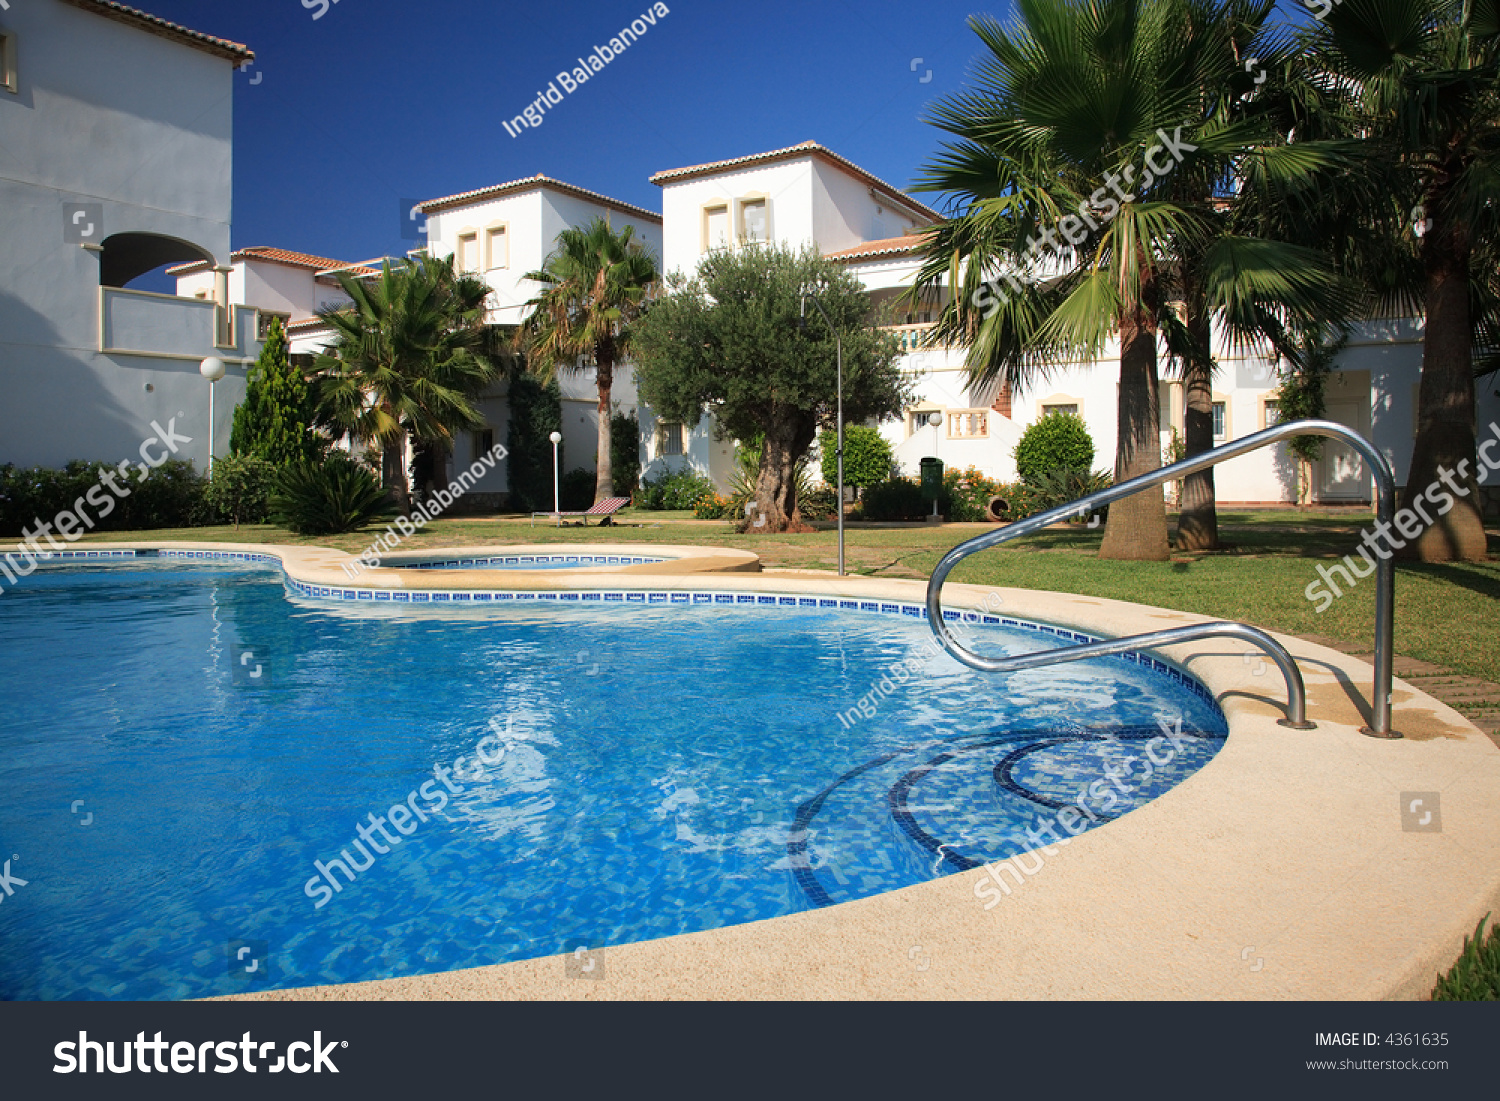 Spanish villas with swimming pool stock photo 4361635 shutterstock for What is swimming pool in spanish